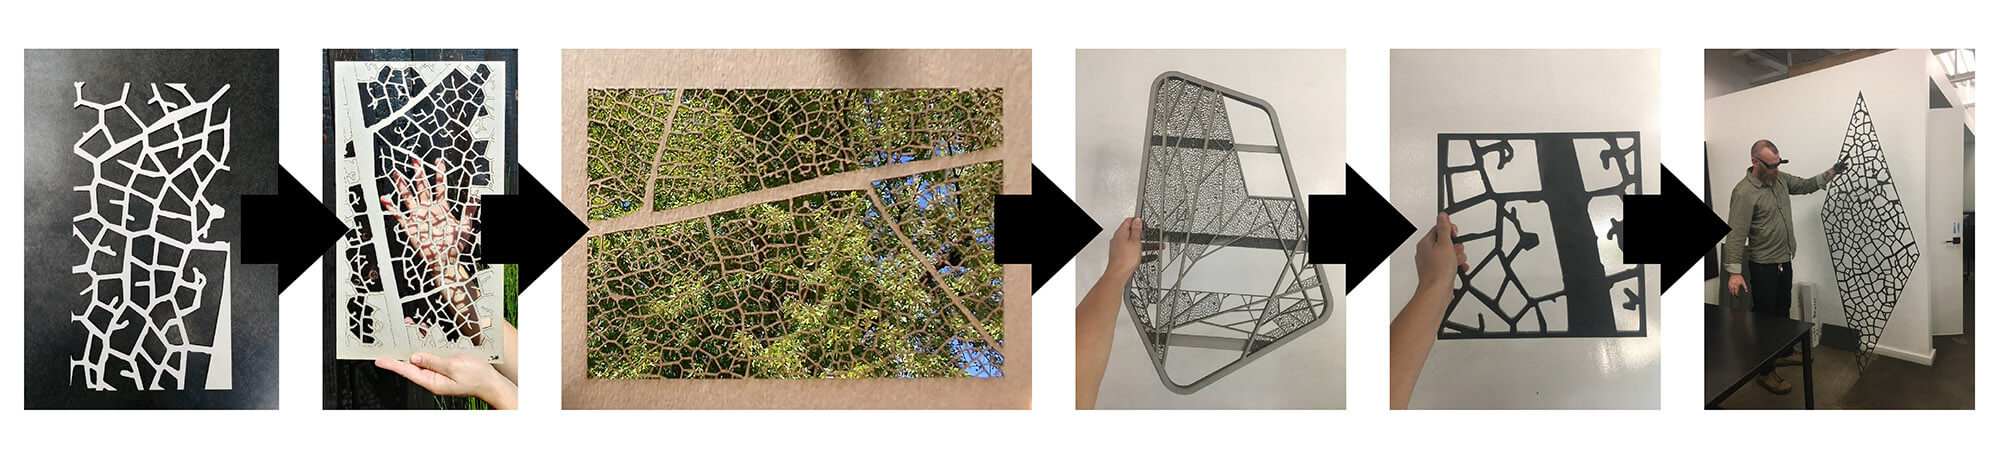 tree house architecture modus fabricating metal screen process